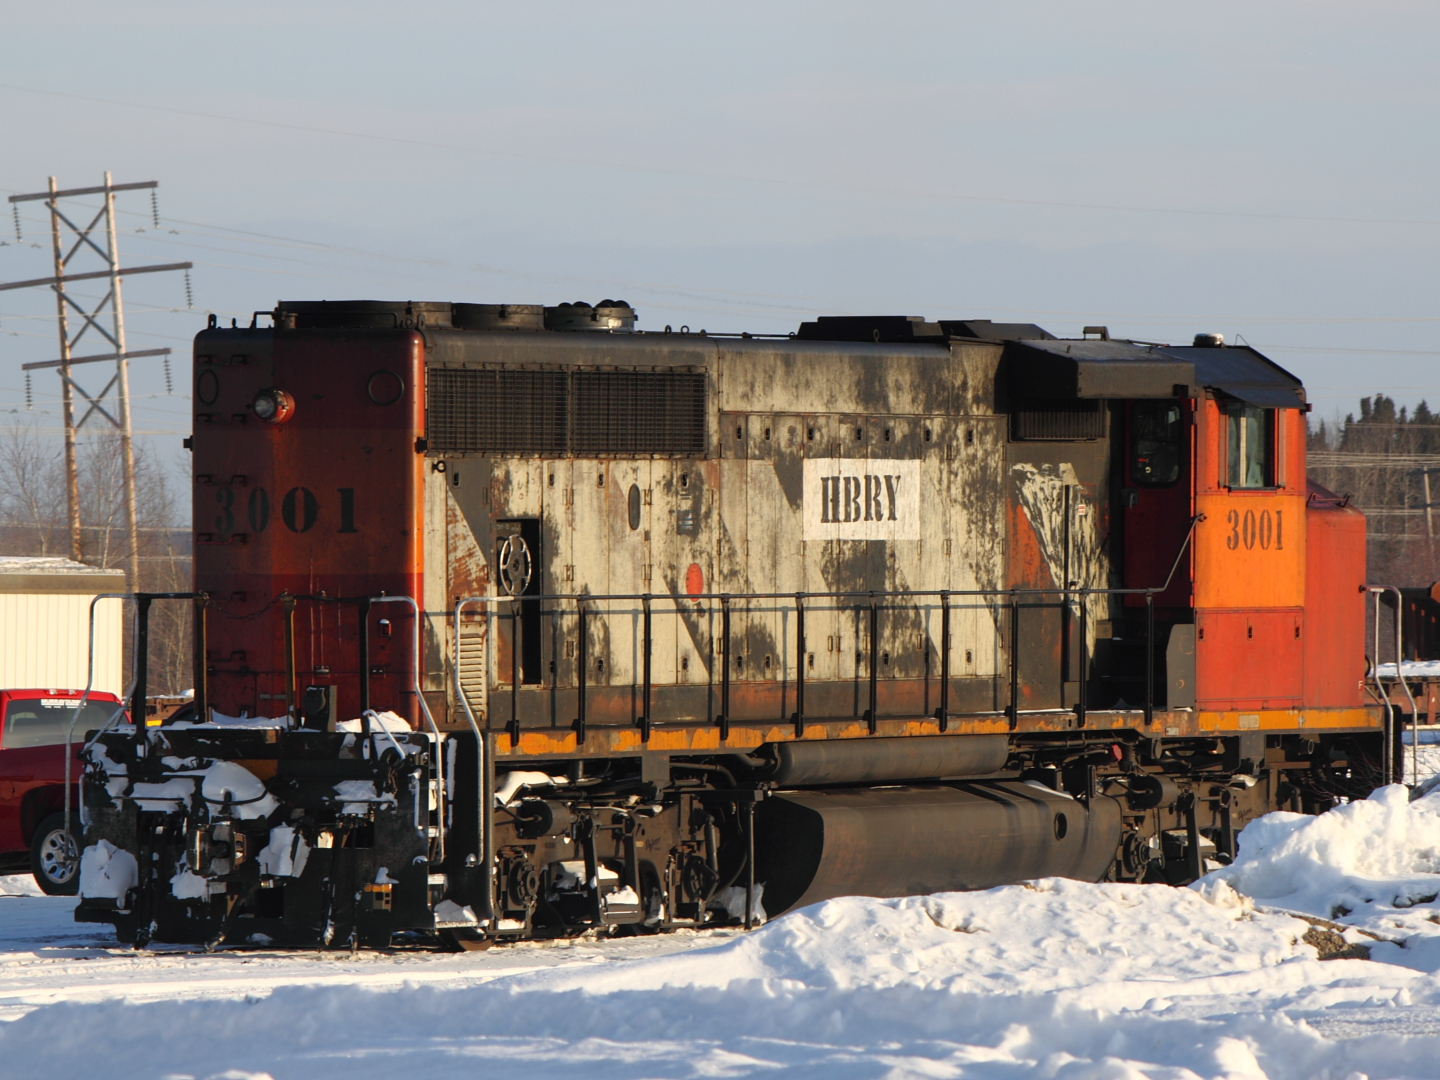 HBRY 3001 in Thompson, MB 2012/03/07